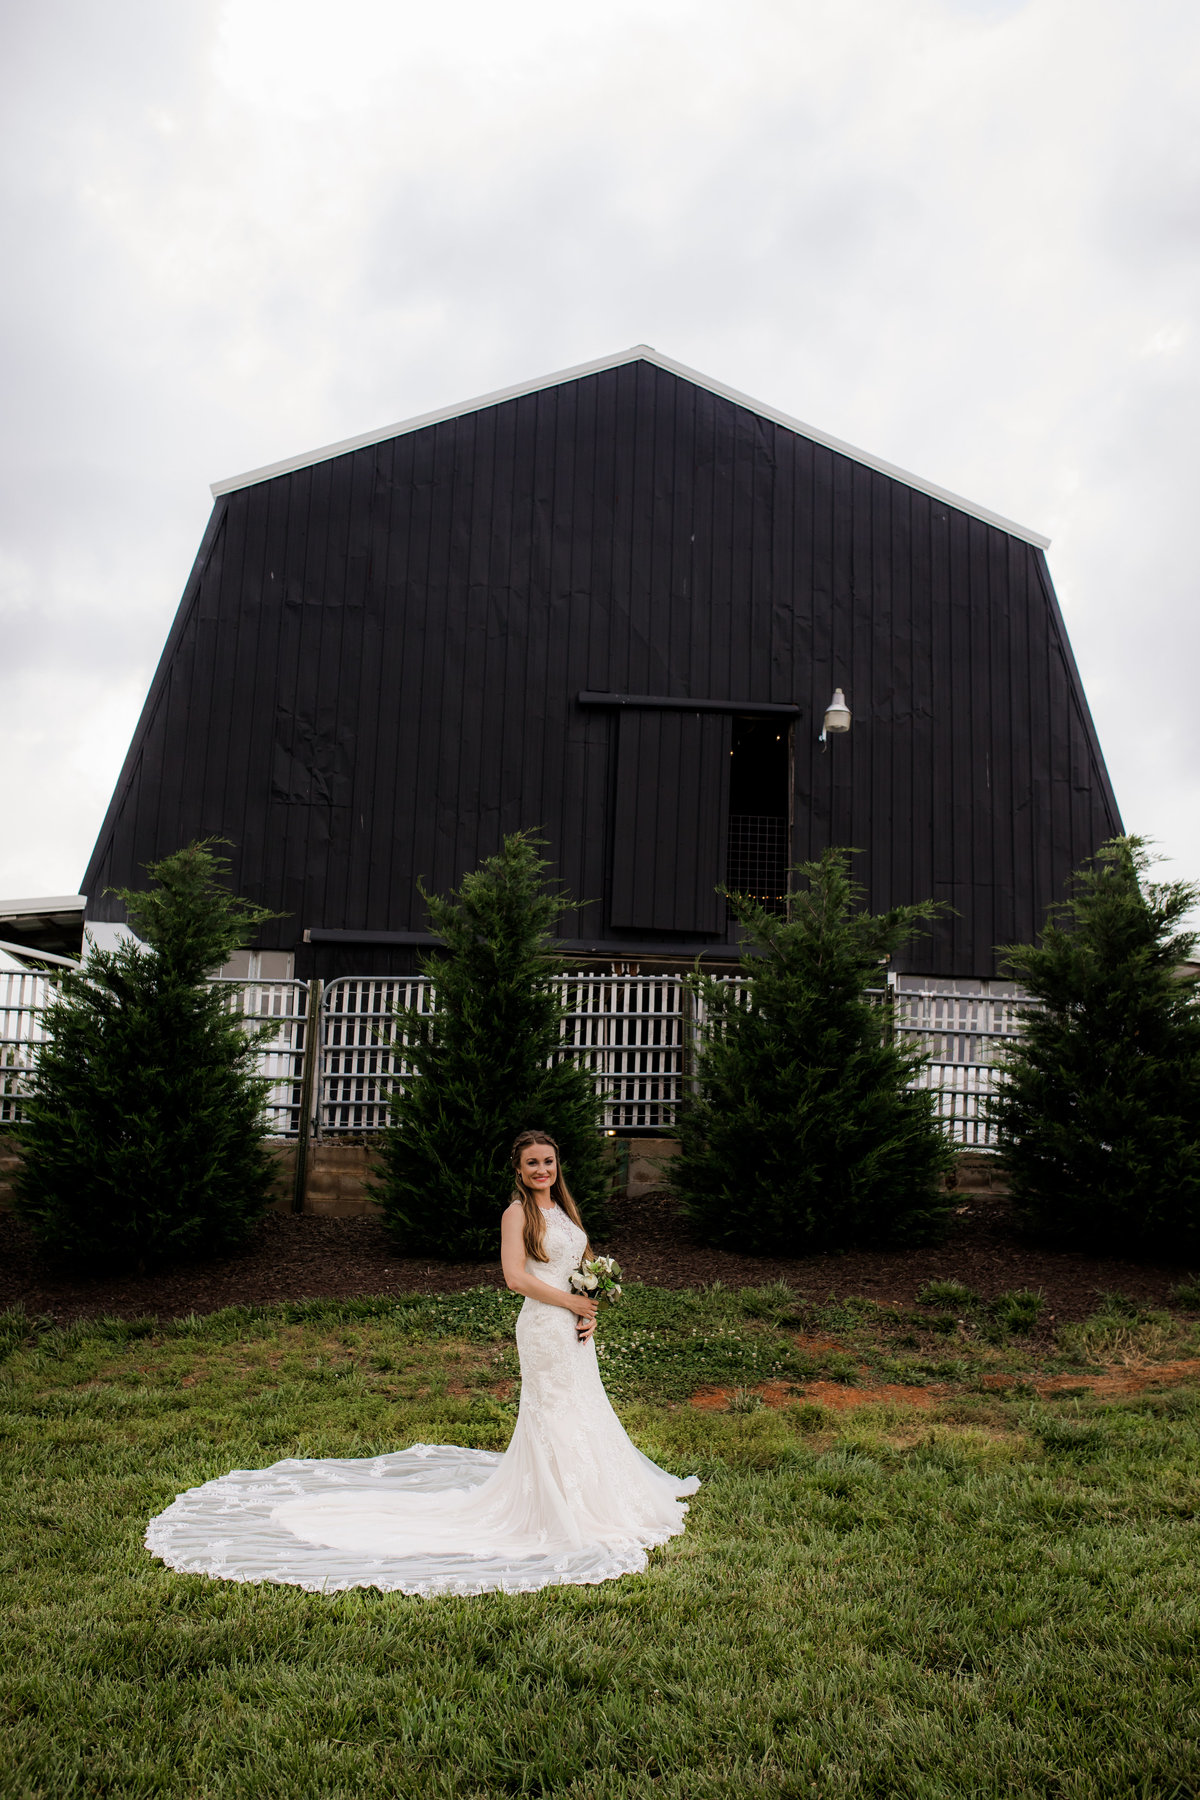 Nsshville Bride - Nashville Brides - The Hayloft Weddings - Tennessee Brides - Kentucky Brides - Southern Brides - Cowboys Wife - Cowboys Bride - Ranch Weddings - Cowboys and Belles053